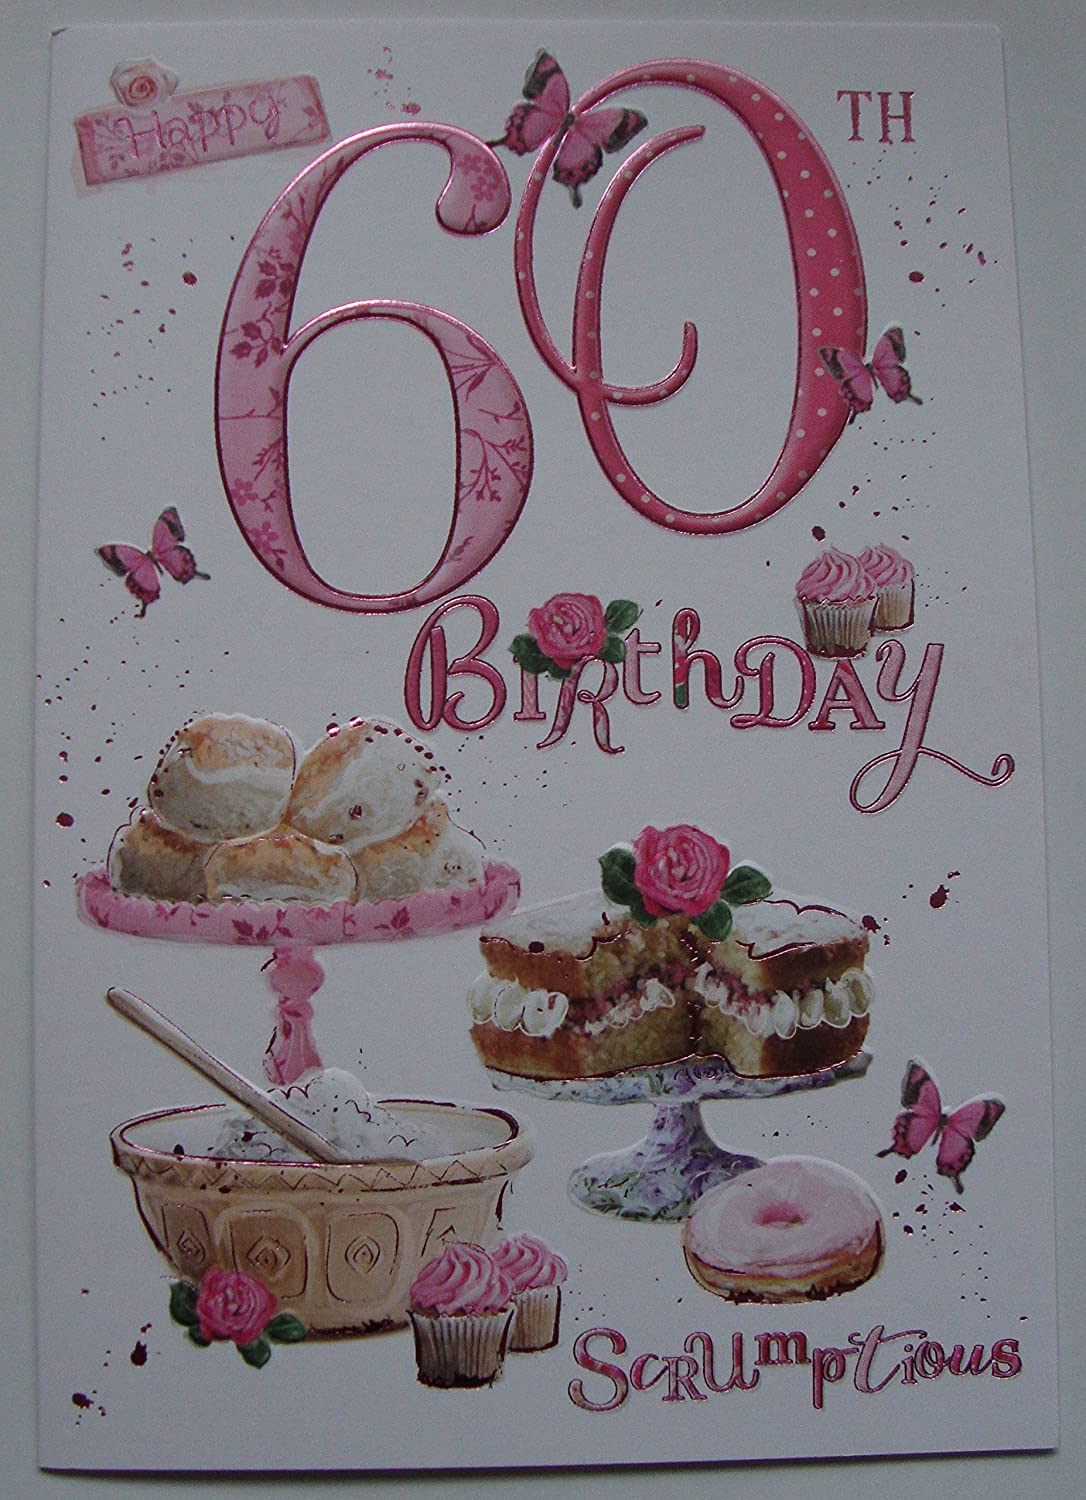 Incredible 60Th Birthday Card Ladies Baking Cakes Design With Insert Verse Funny Birthday Cards Online Elaedamsfinfo